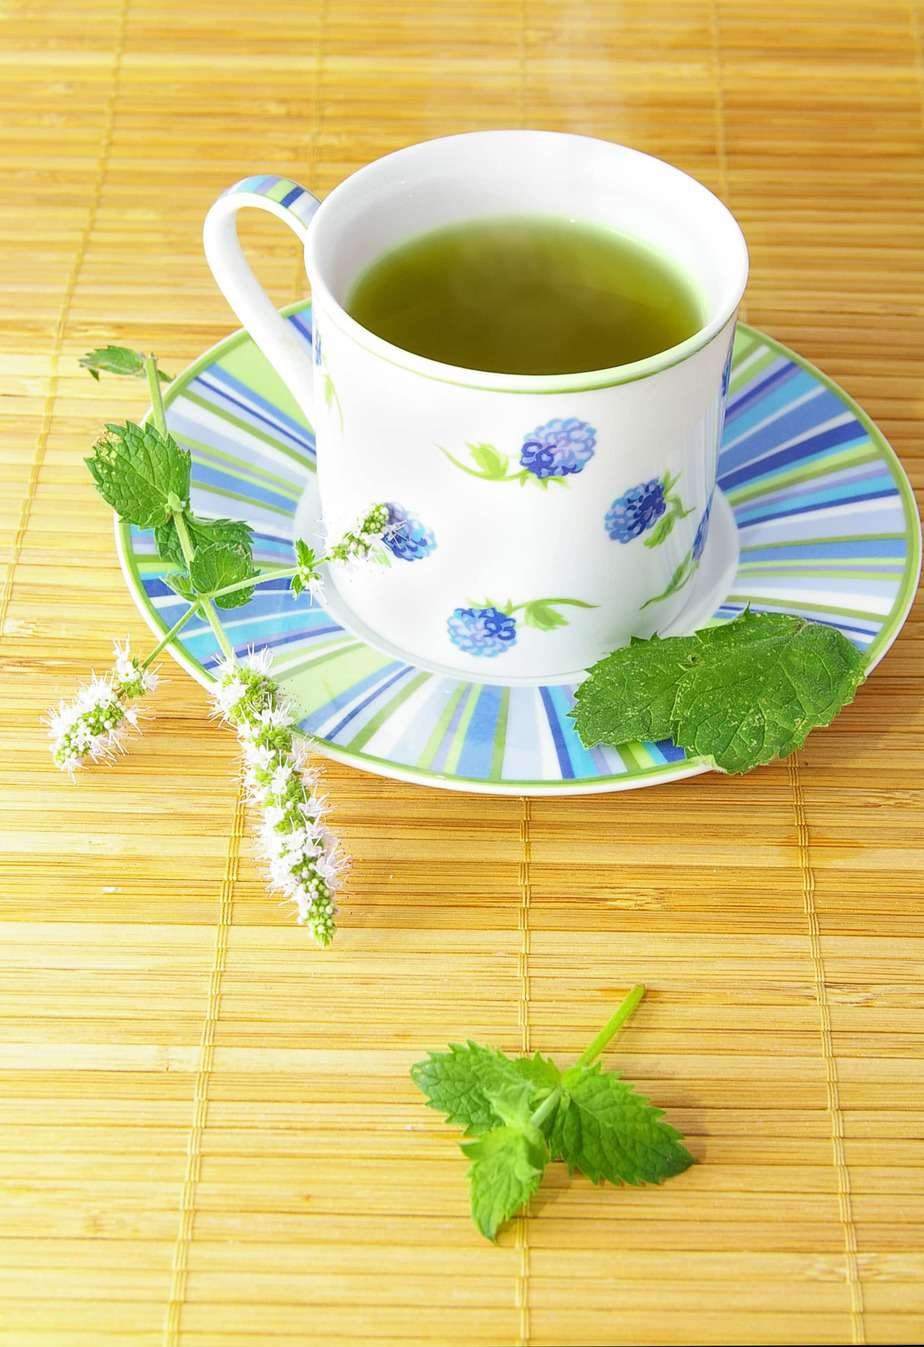 hot green tea with fresh mint leaves